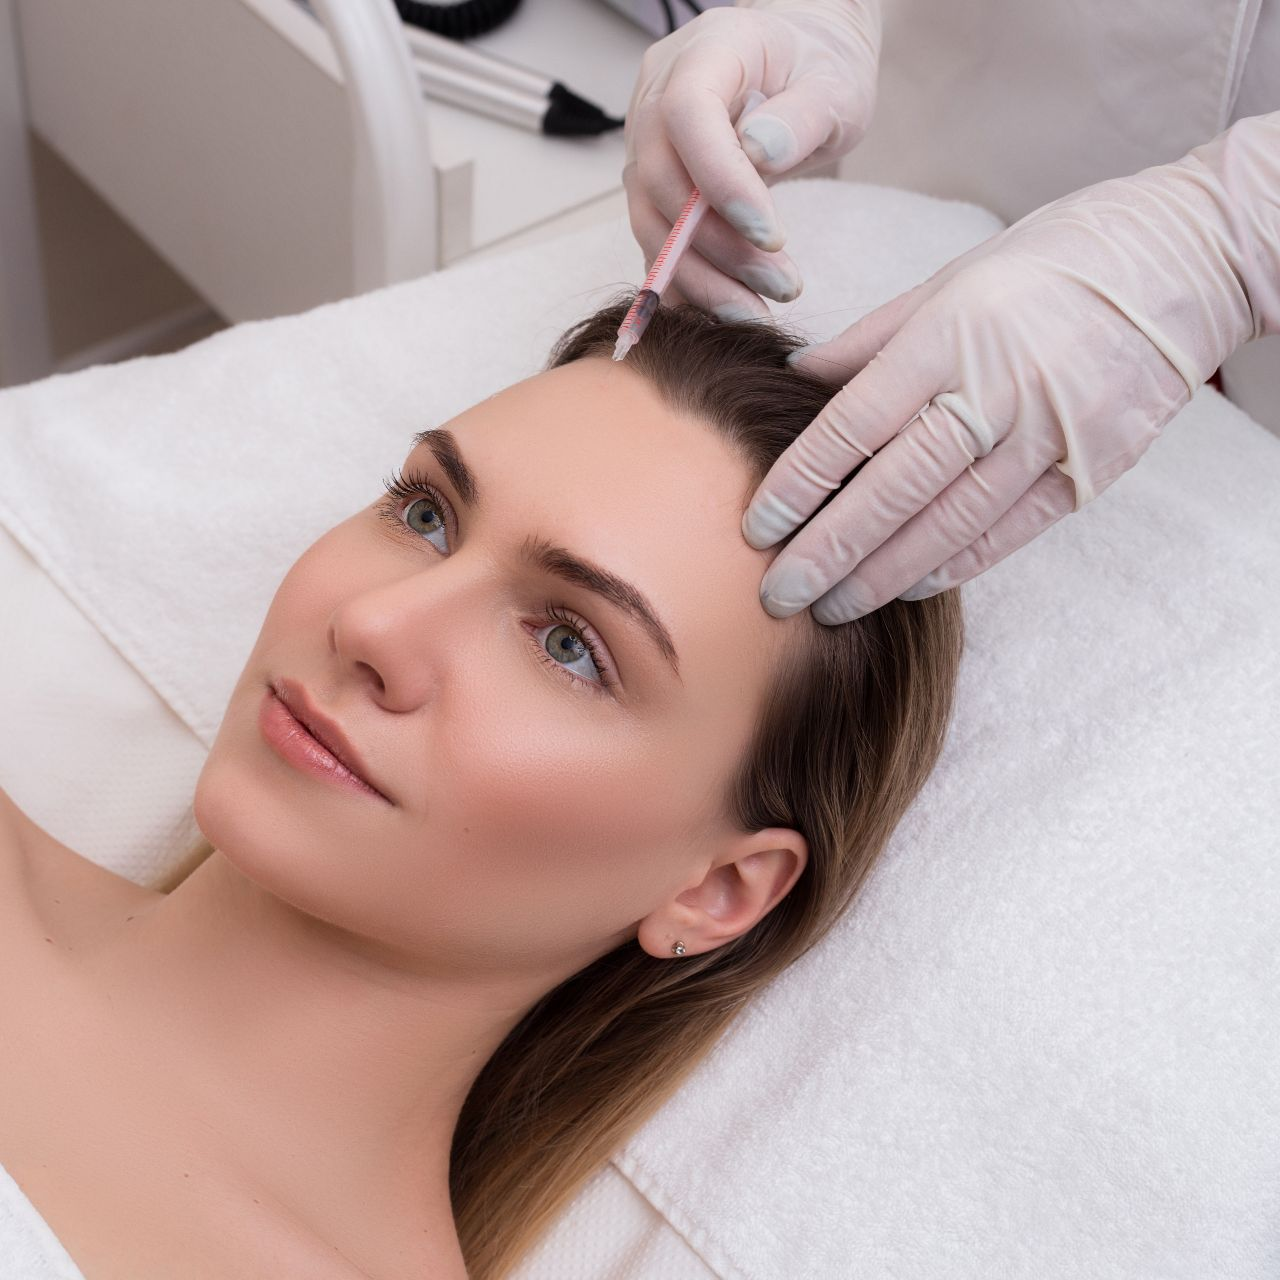 Dermal Fillers - Cosmetic Dermatology - Dermo Aesthetic Surgery